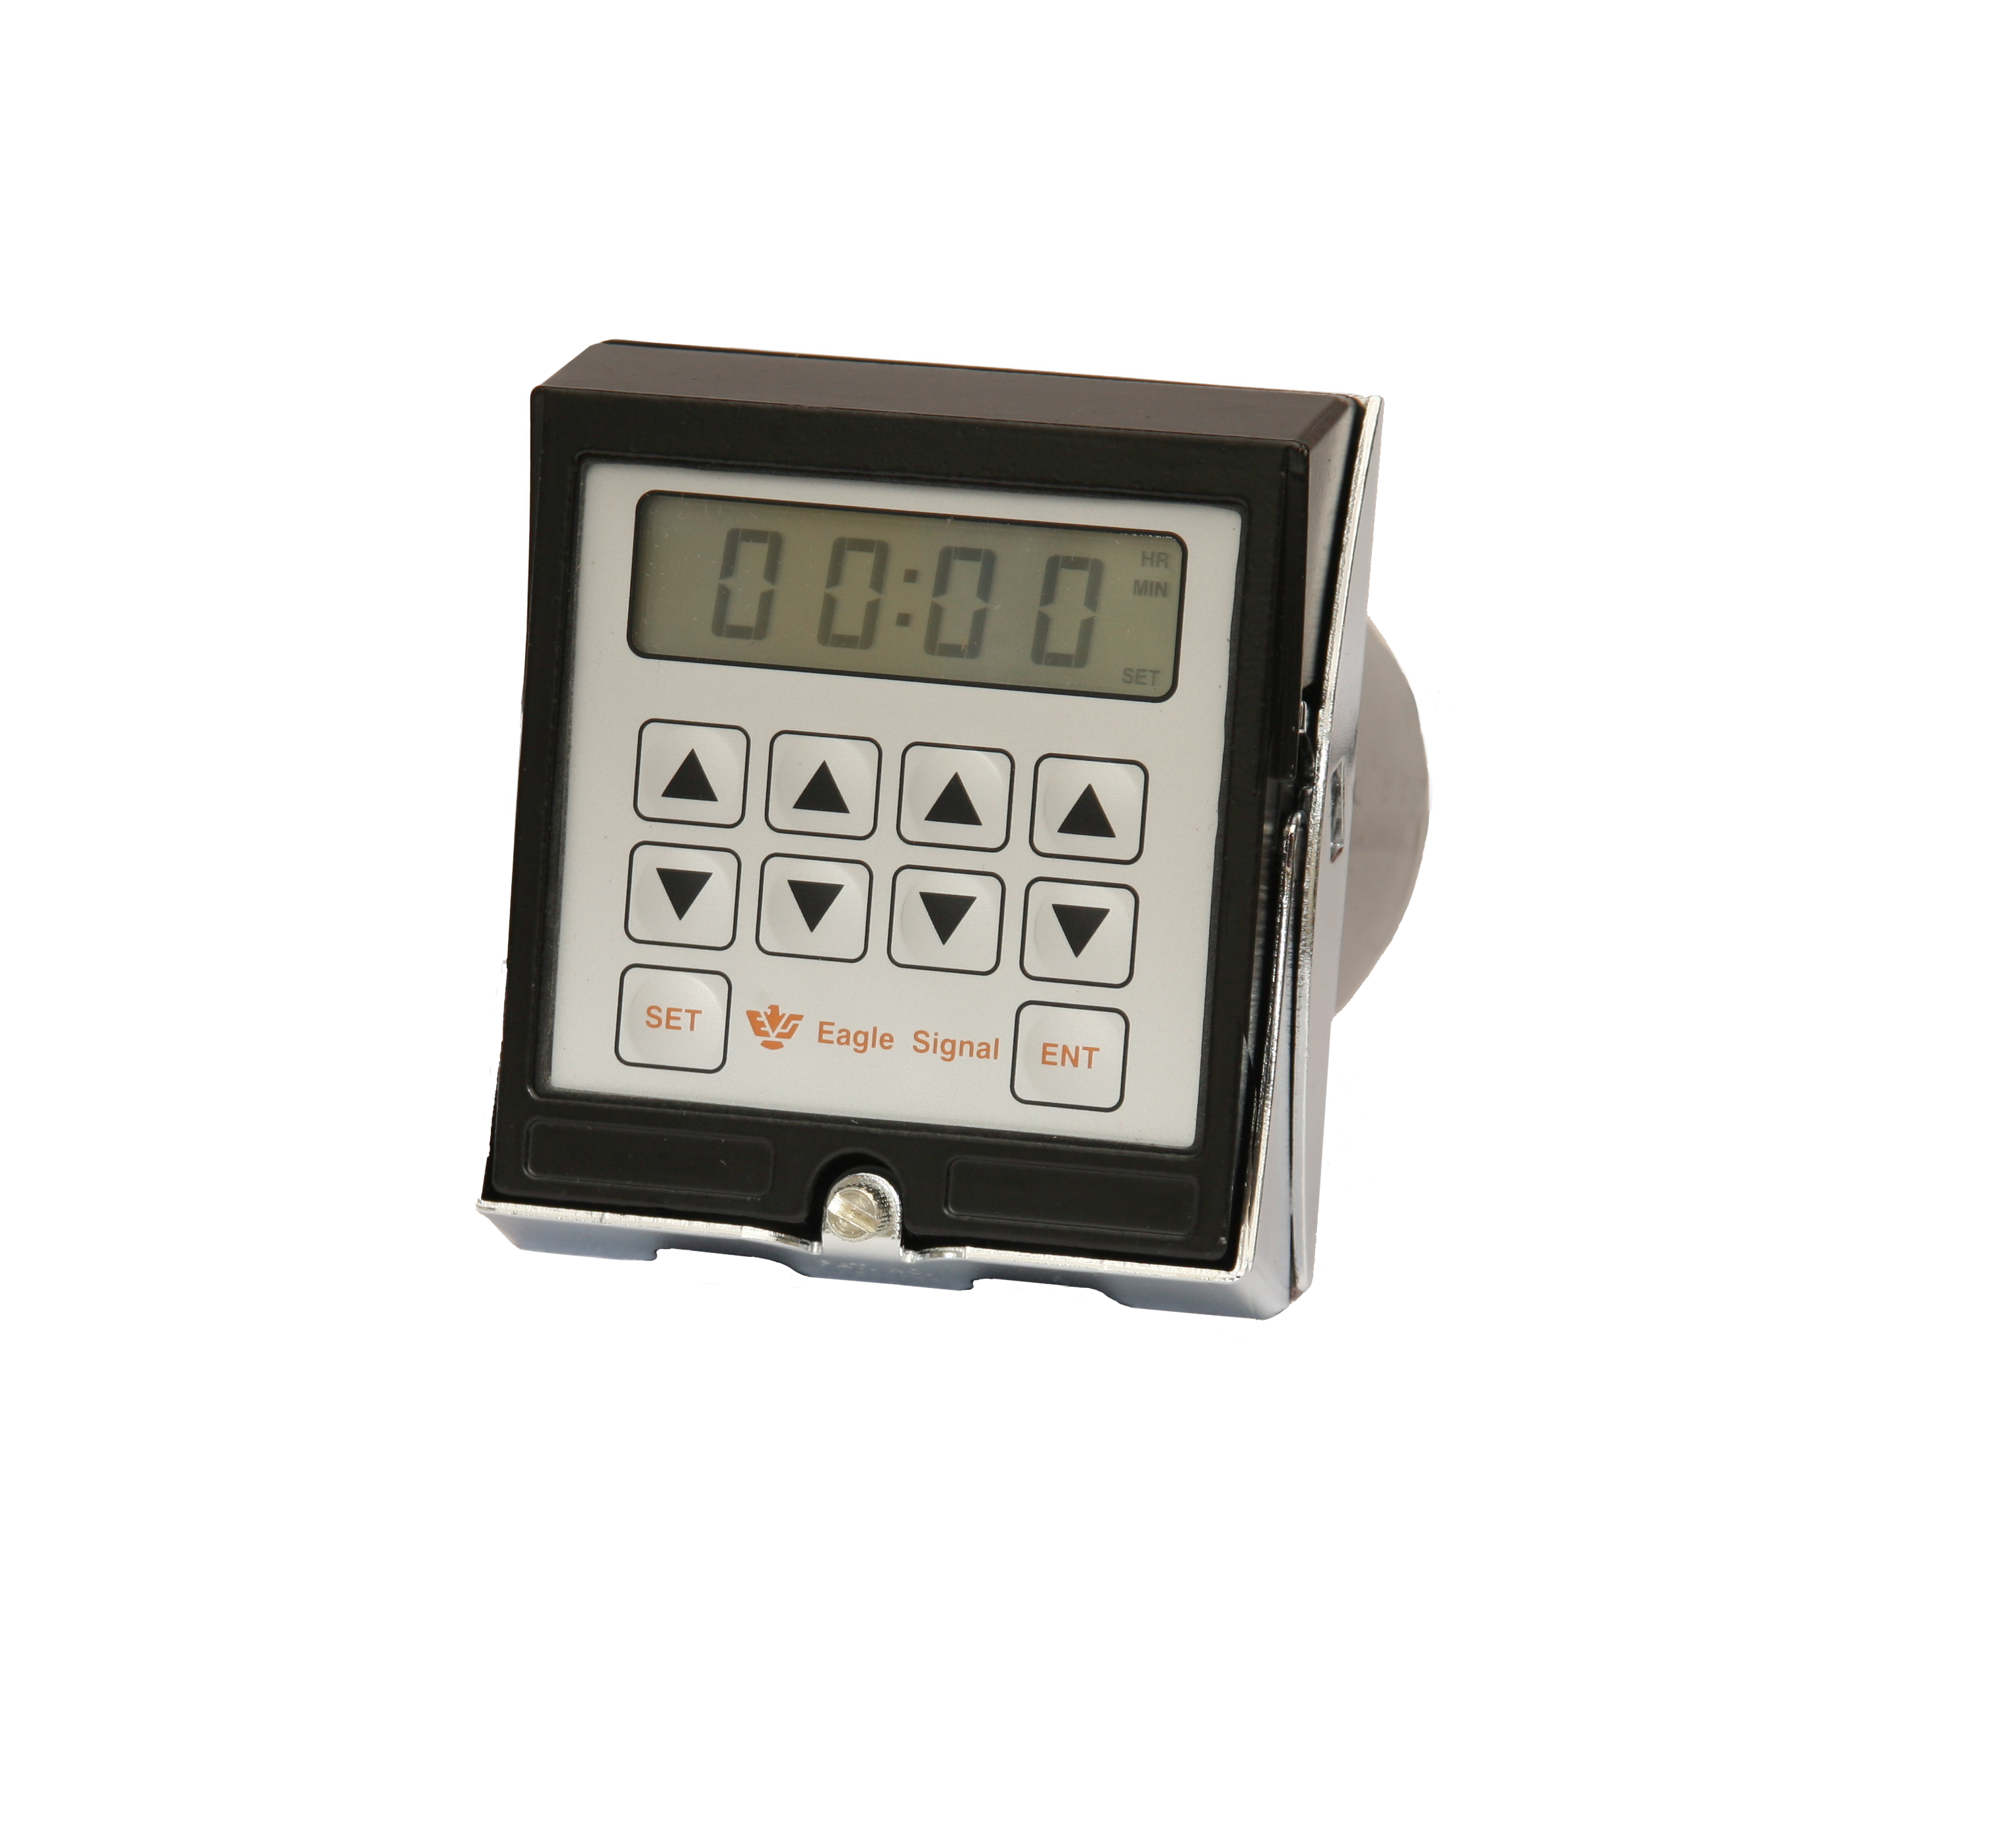 eagle signal electronic timers cx100 cycle flex repeat cycle timer rh specialtyproducttechnologies com Defrost Timer Diagram Defrost Timer Diagram